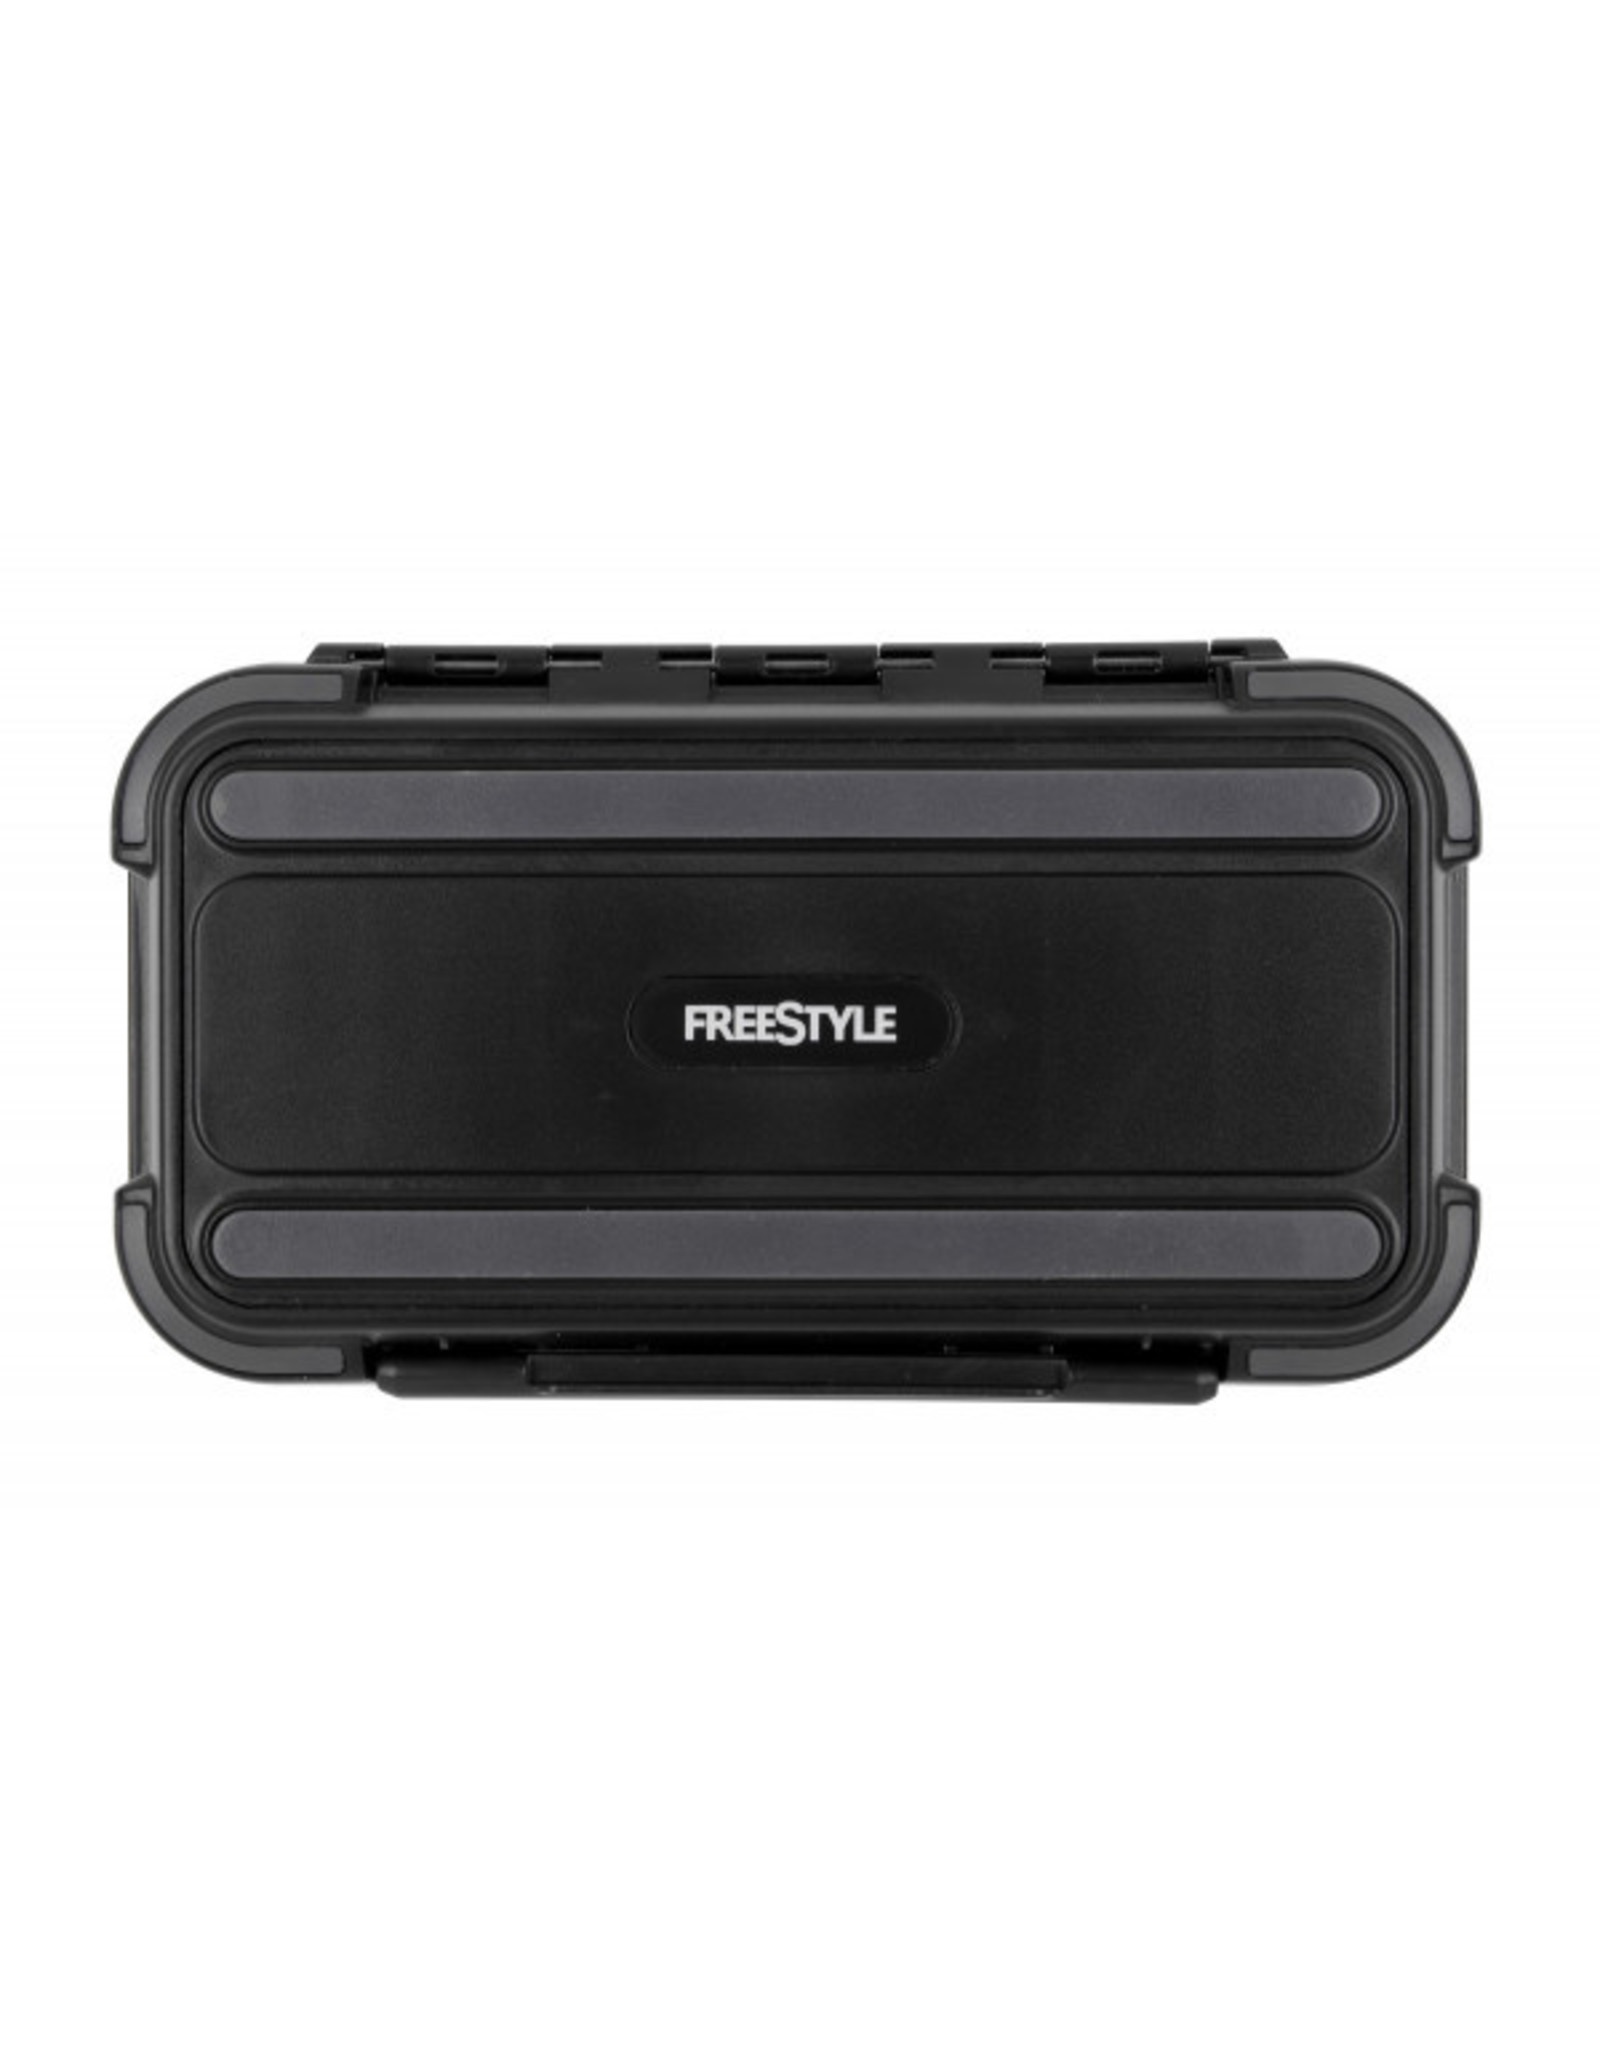 SPRO Freestyle Rigged Box  L 16*9.5*5CM